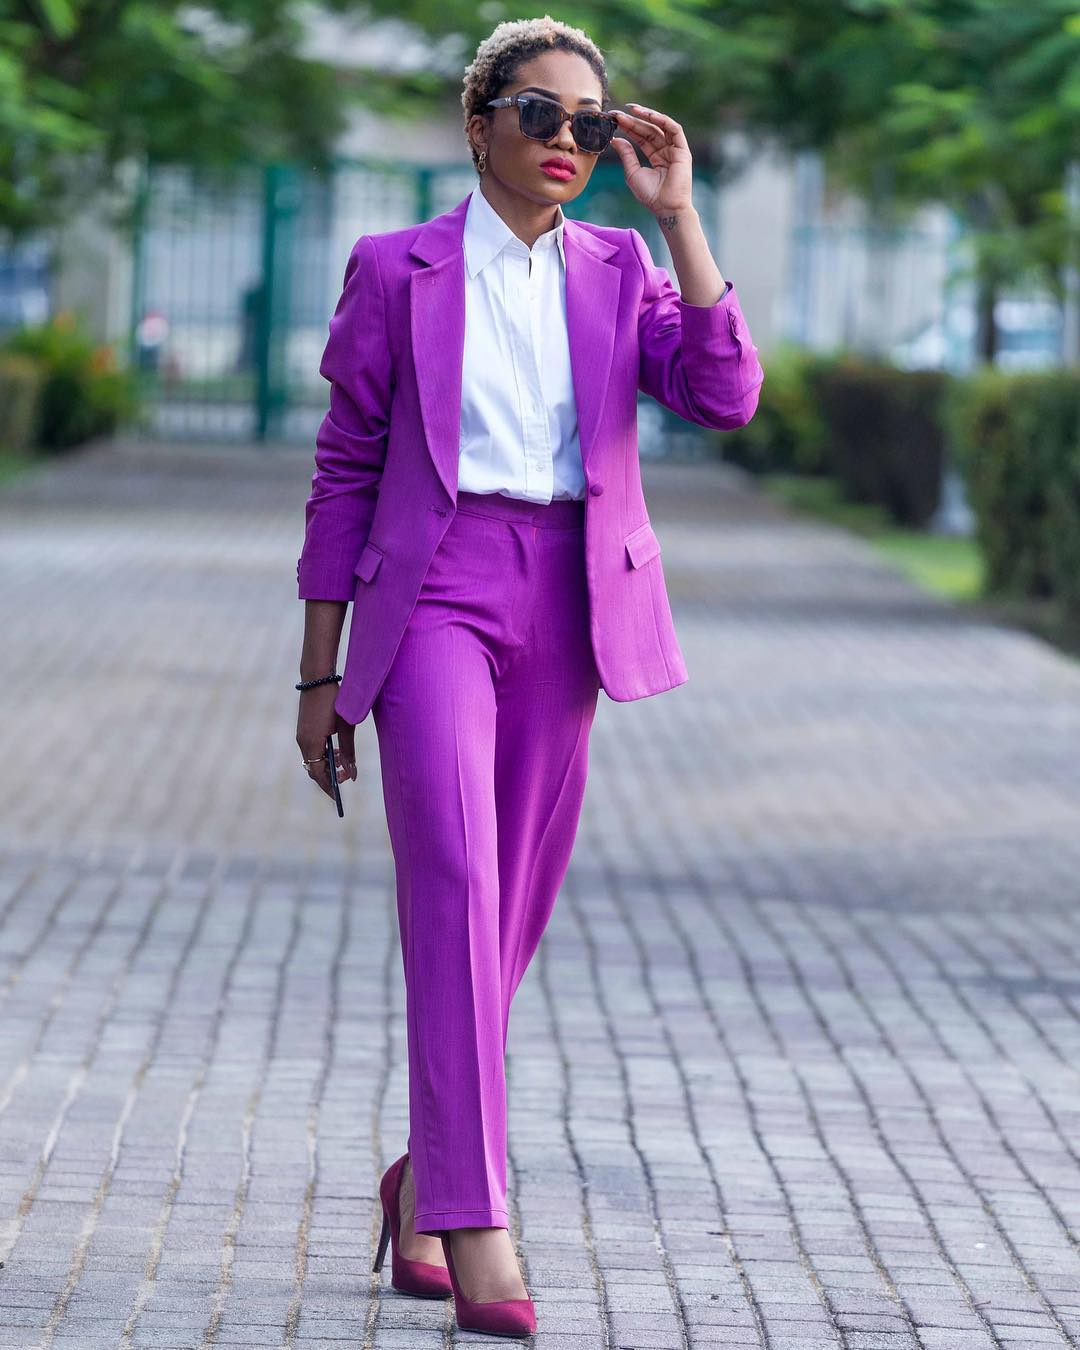 Image result for nigerian woman wearing coloured power suit